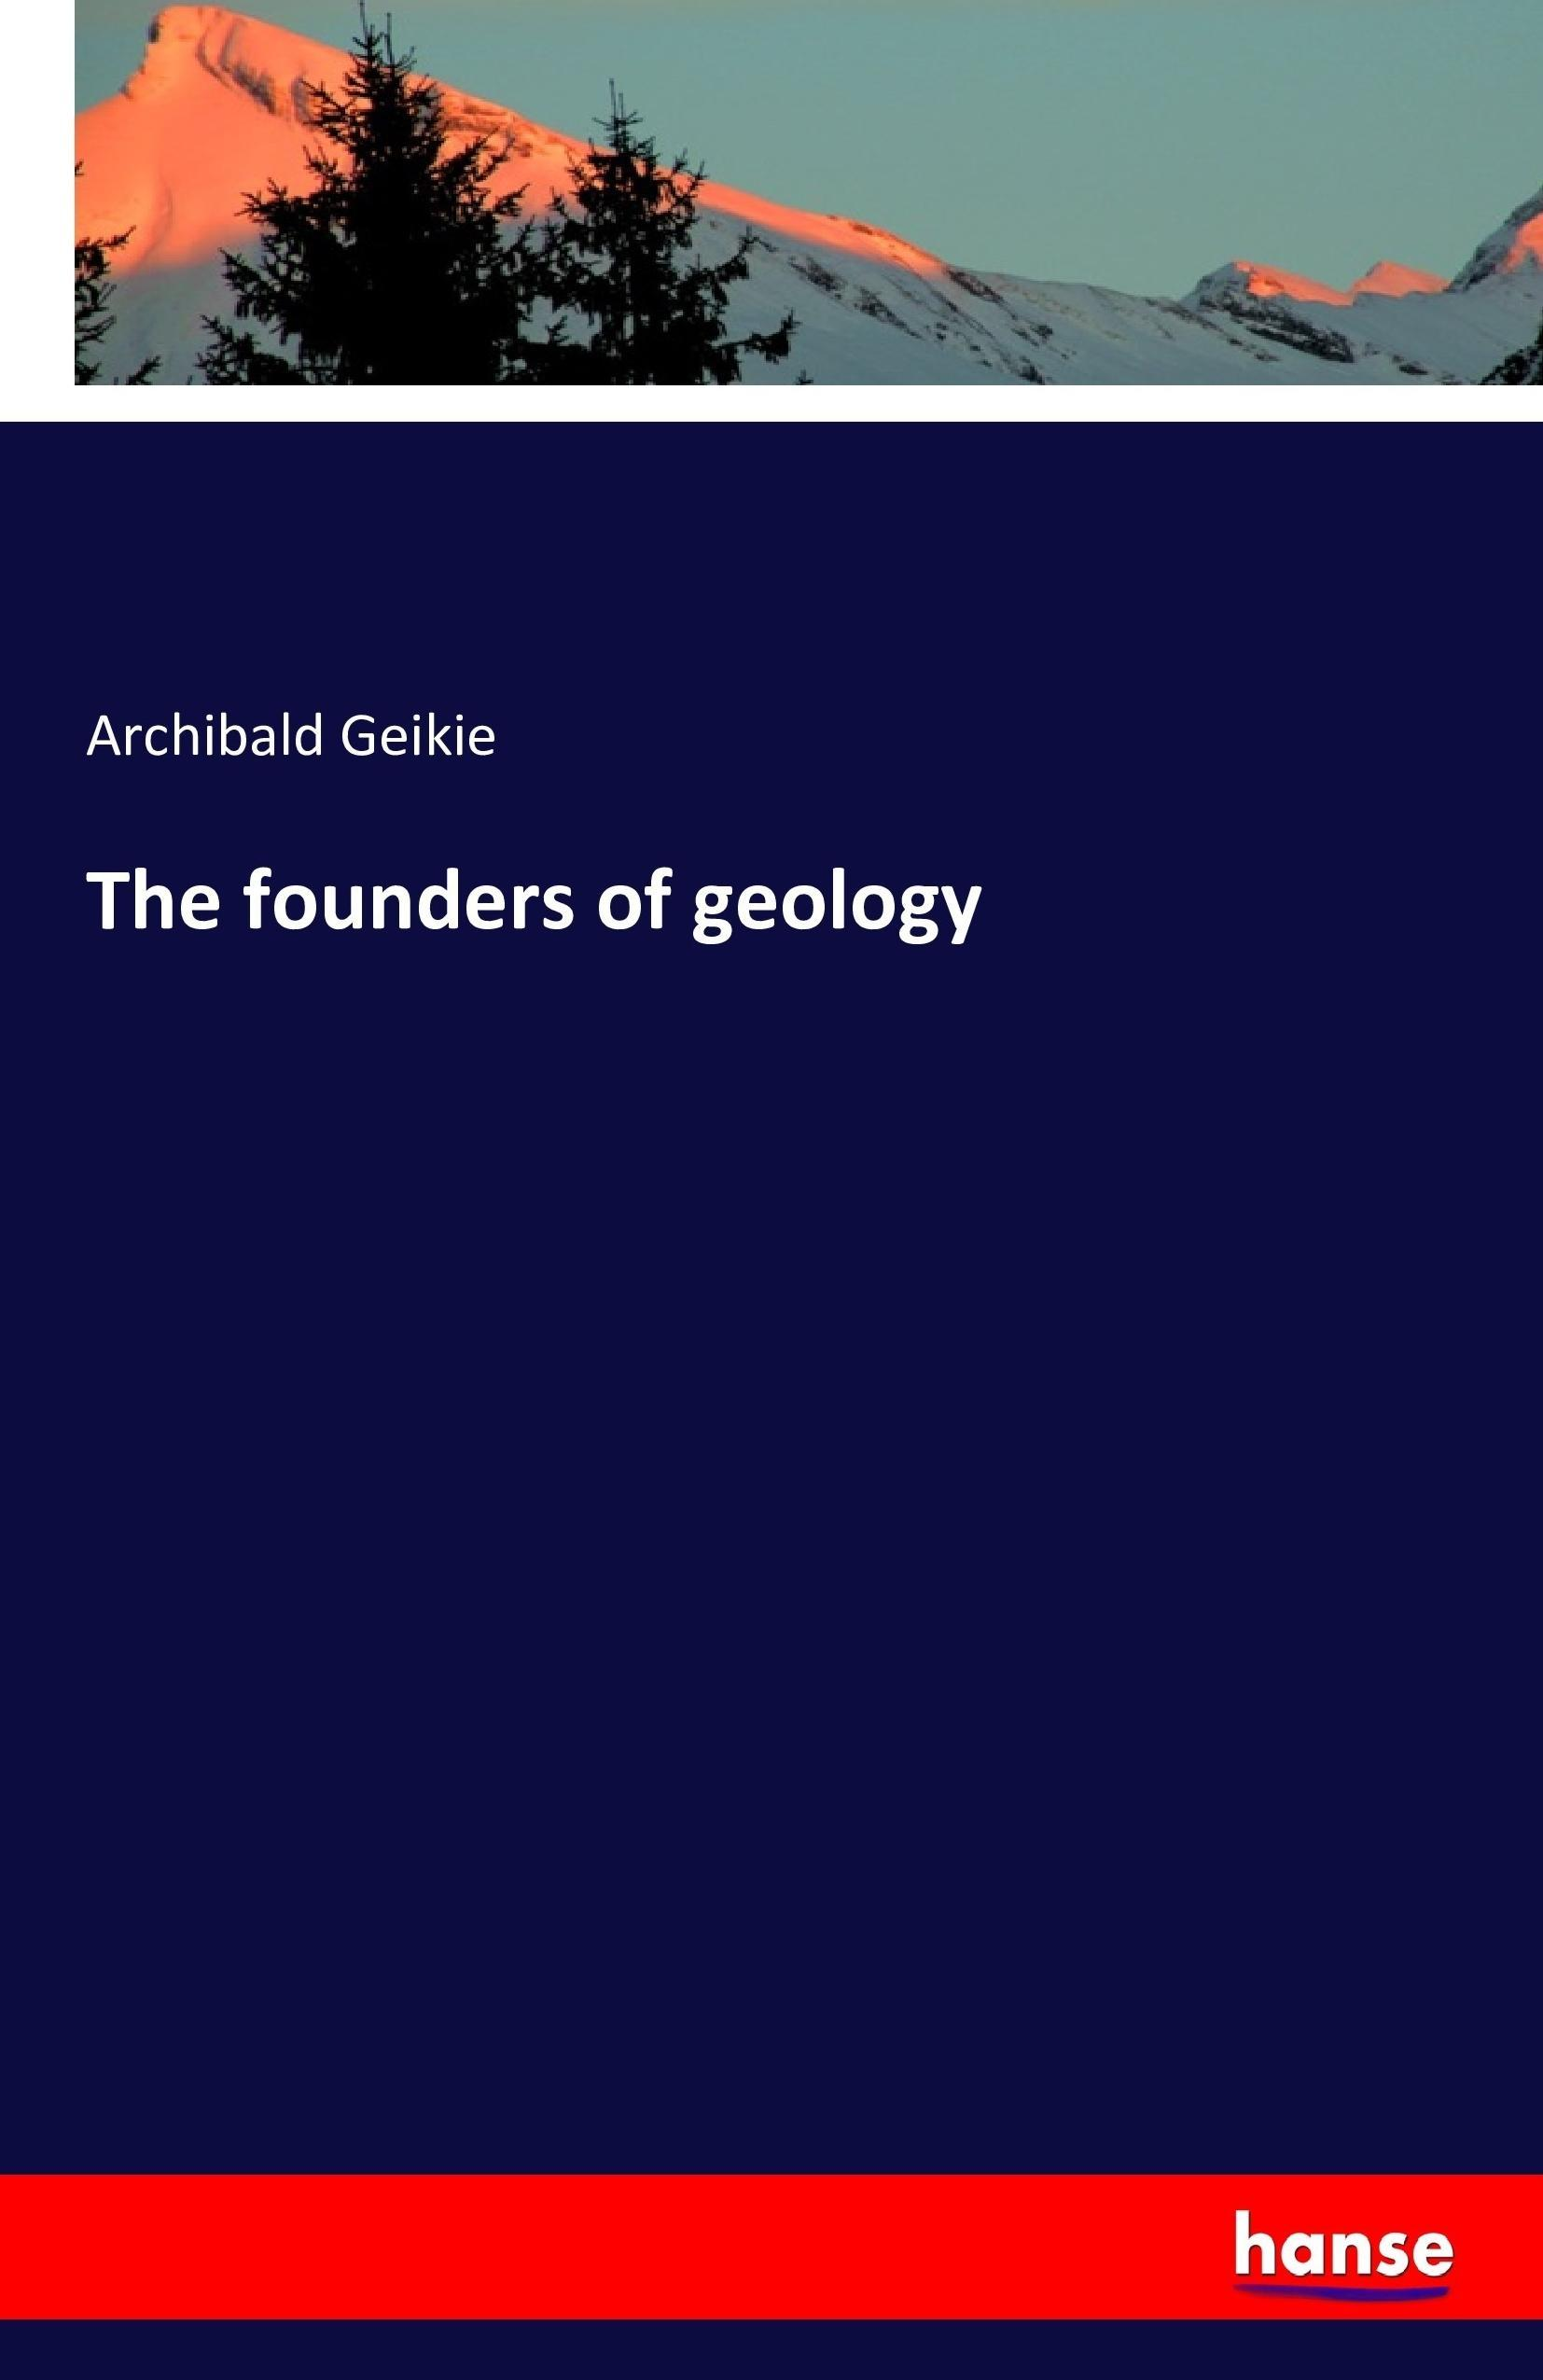 The founders of geology - Archibald Geikie -  9783742827135